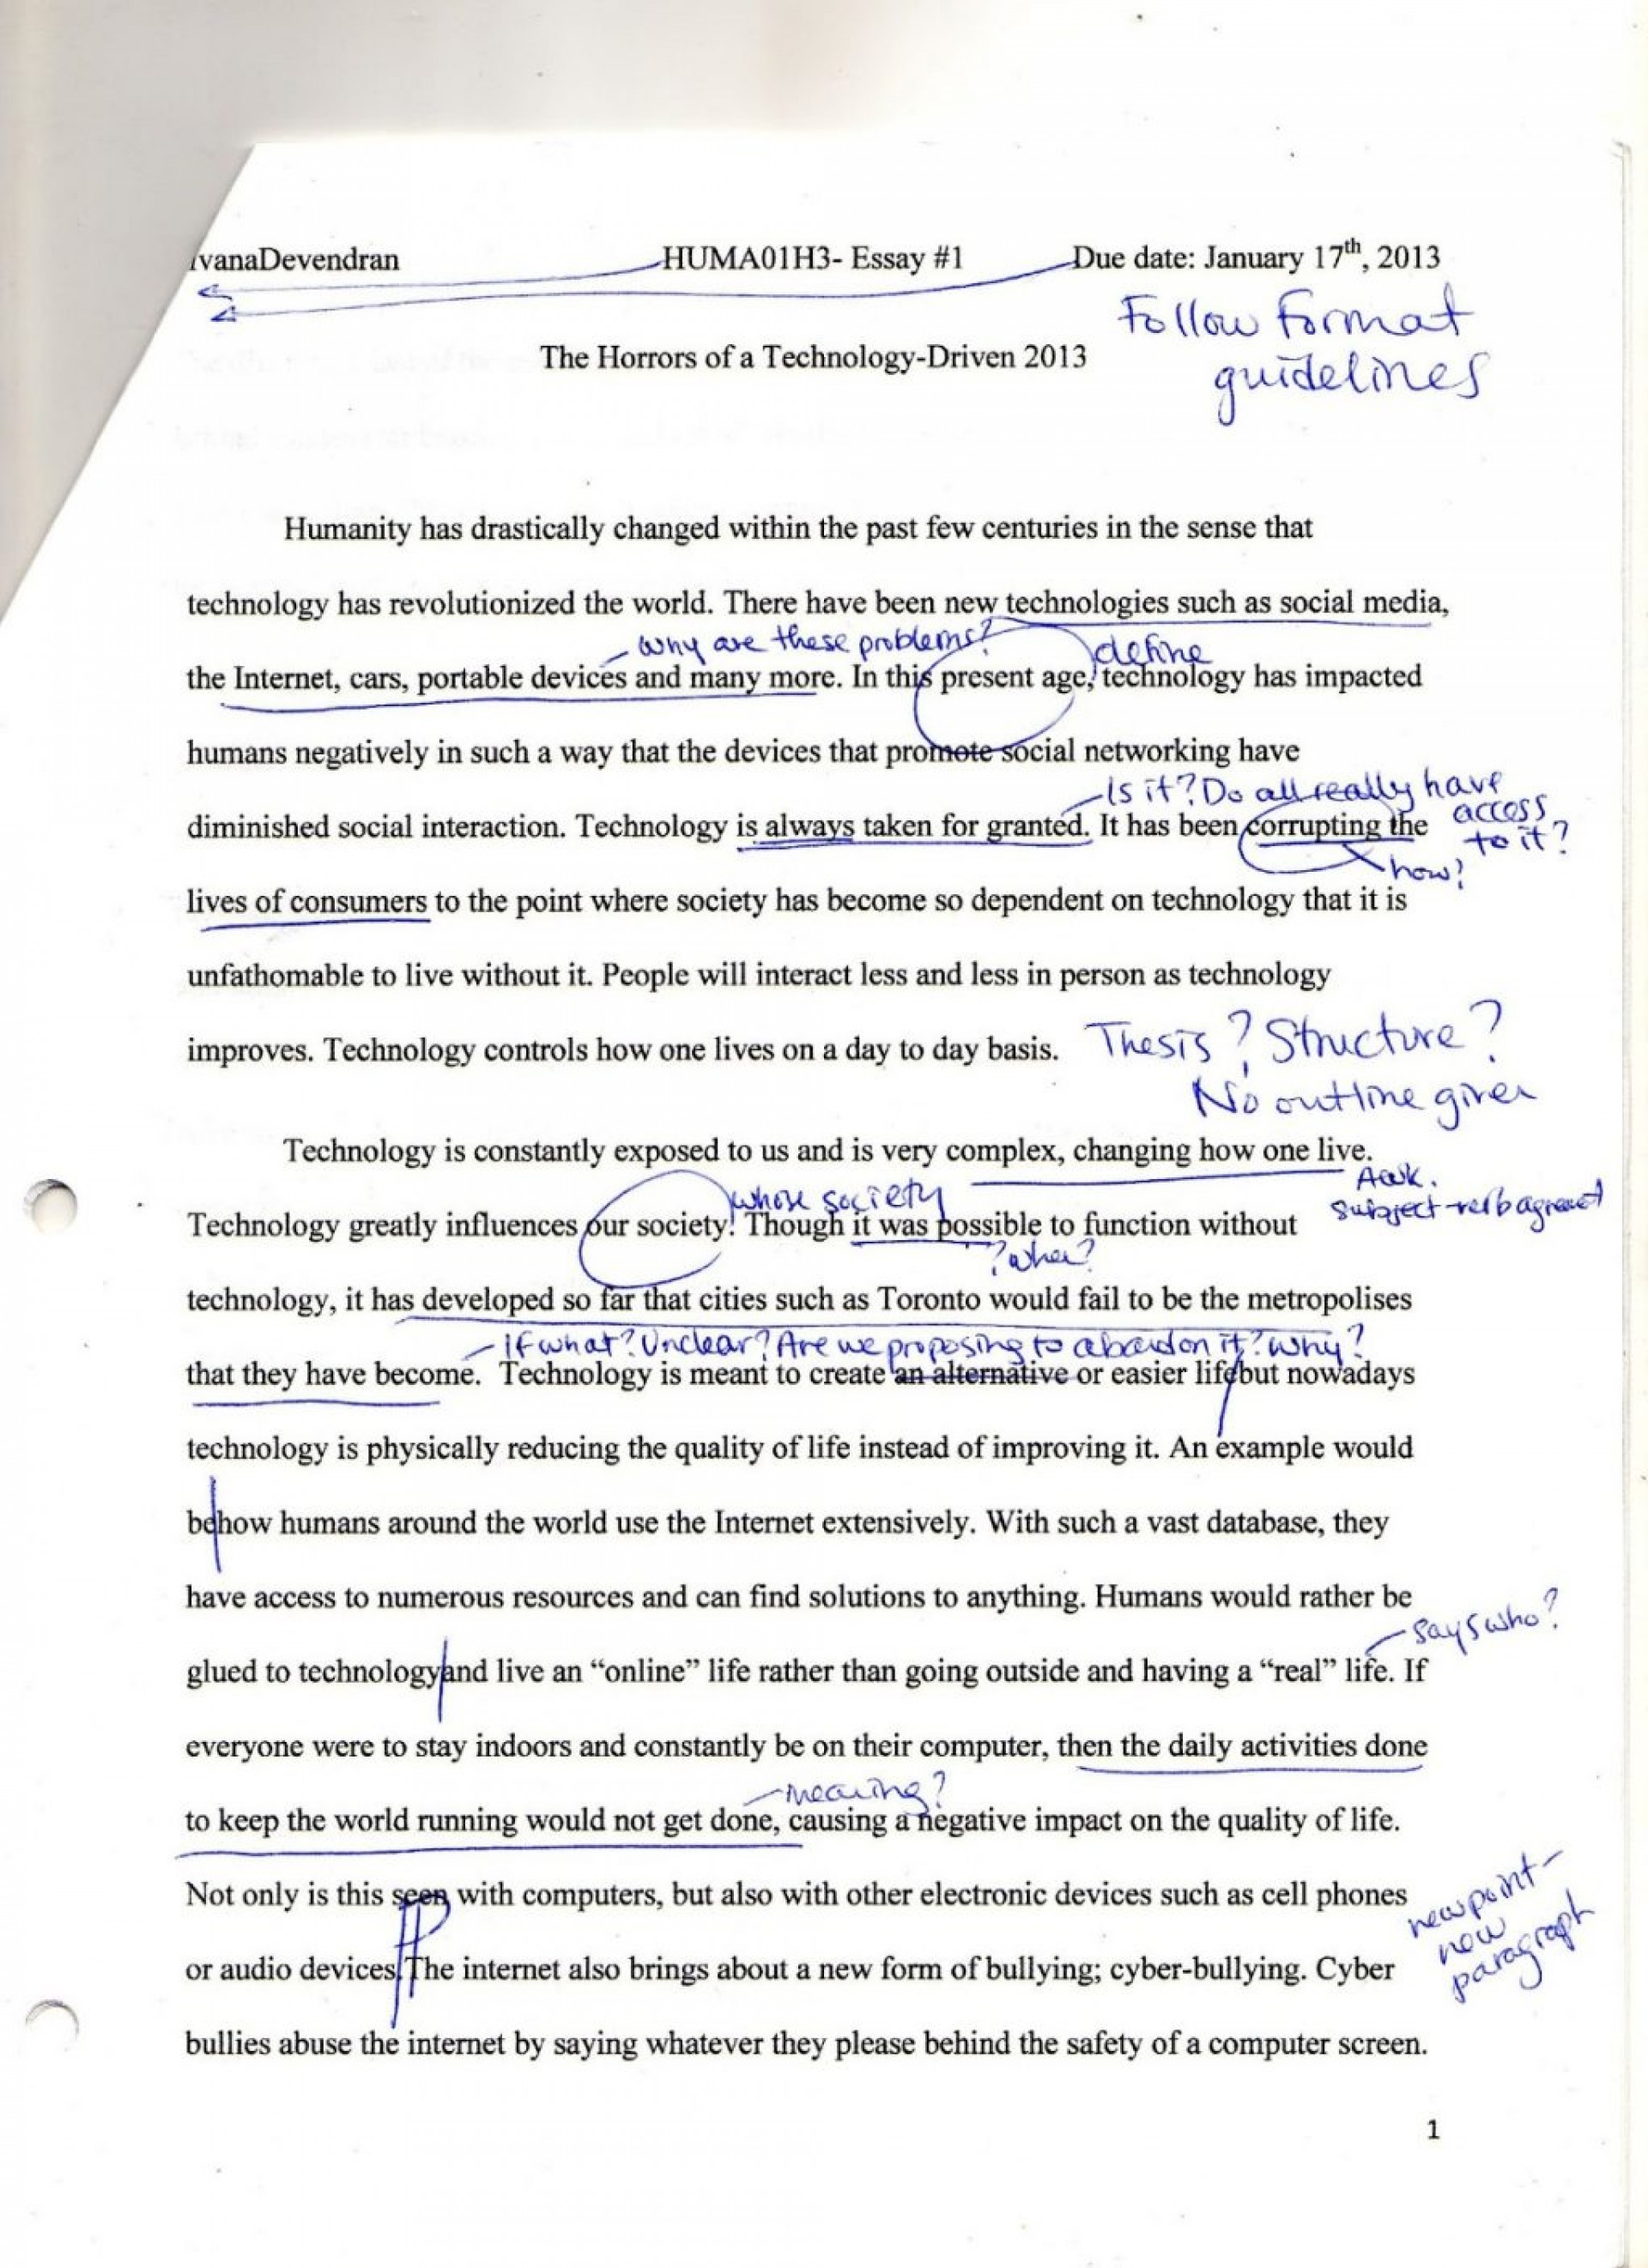 005 Essay Topics Music Img008 What Should You Avoid In Writingearch Paper Humanities Appreciation Questions Classical History Persuasive20 1024x1410 Persuasive About Awful Research Writing 1920